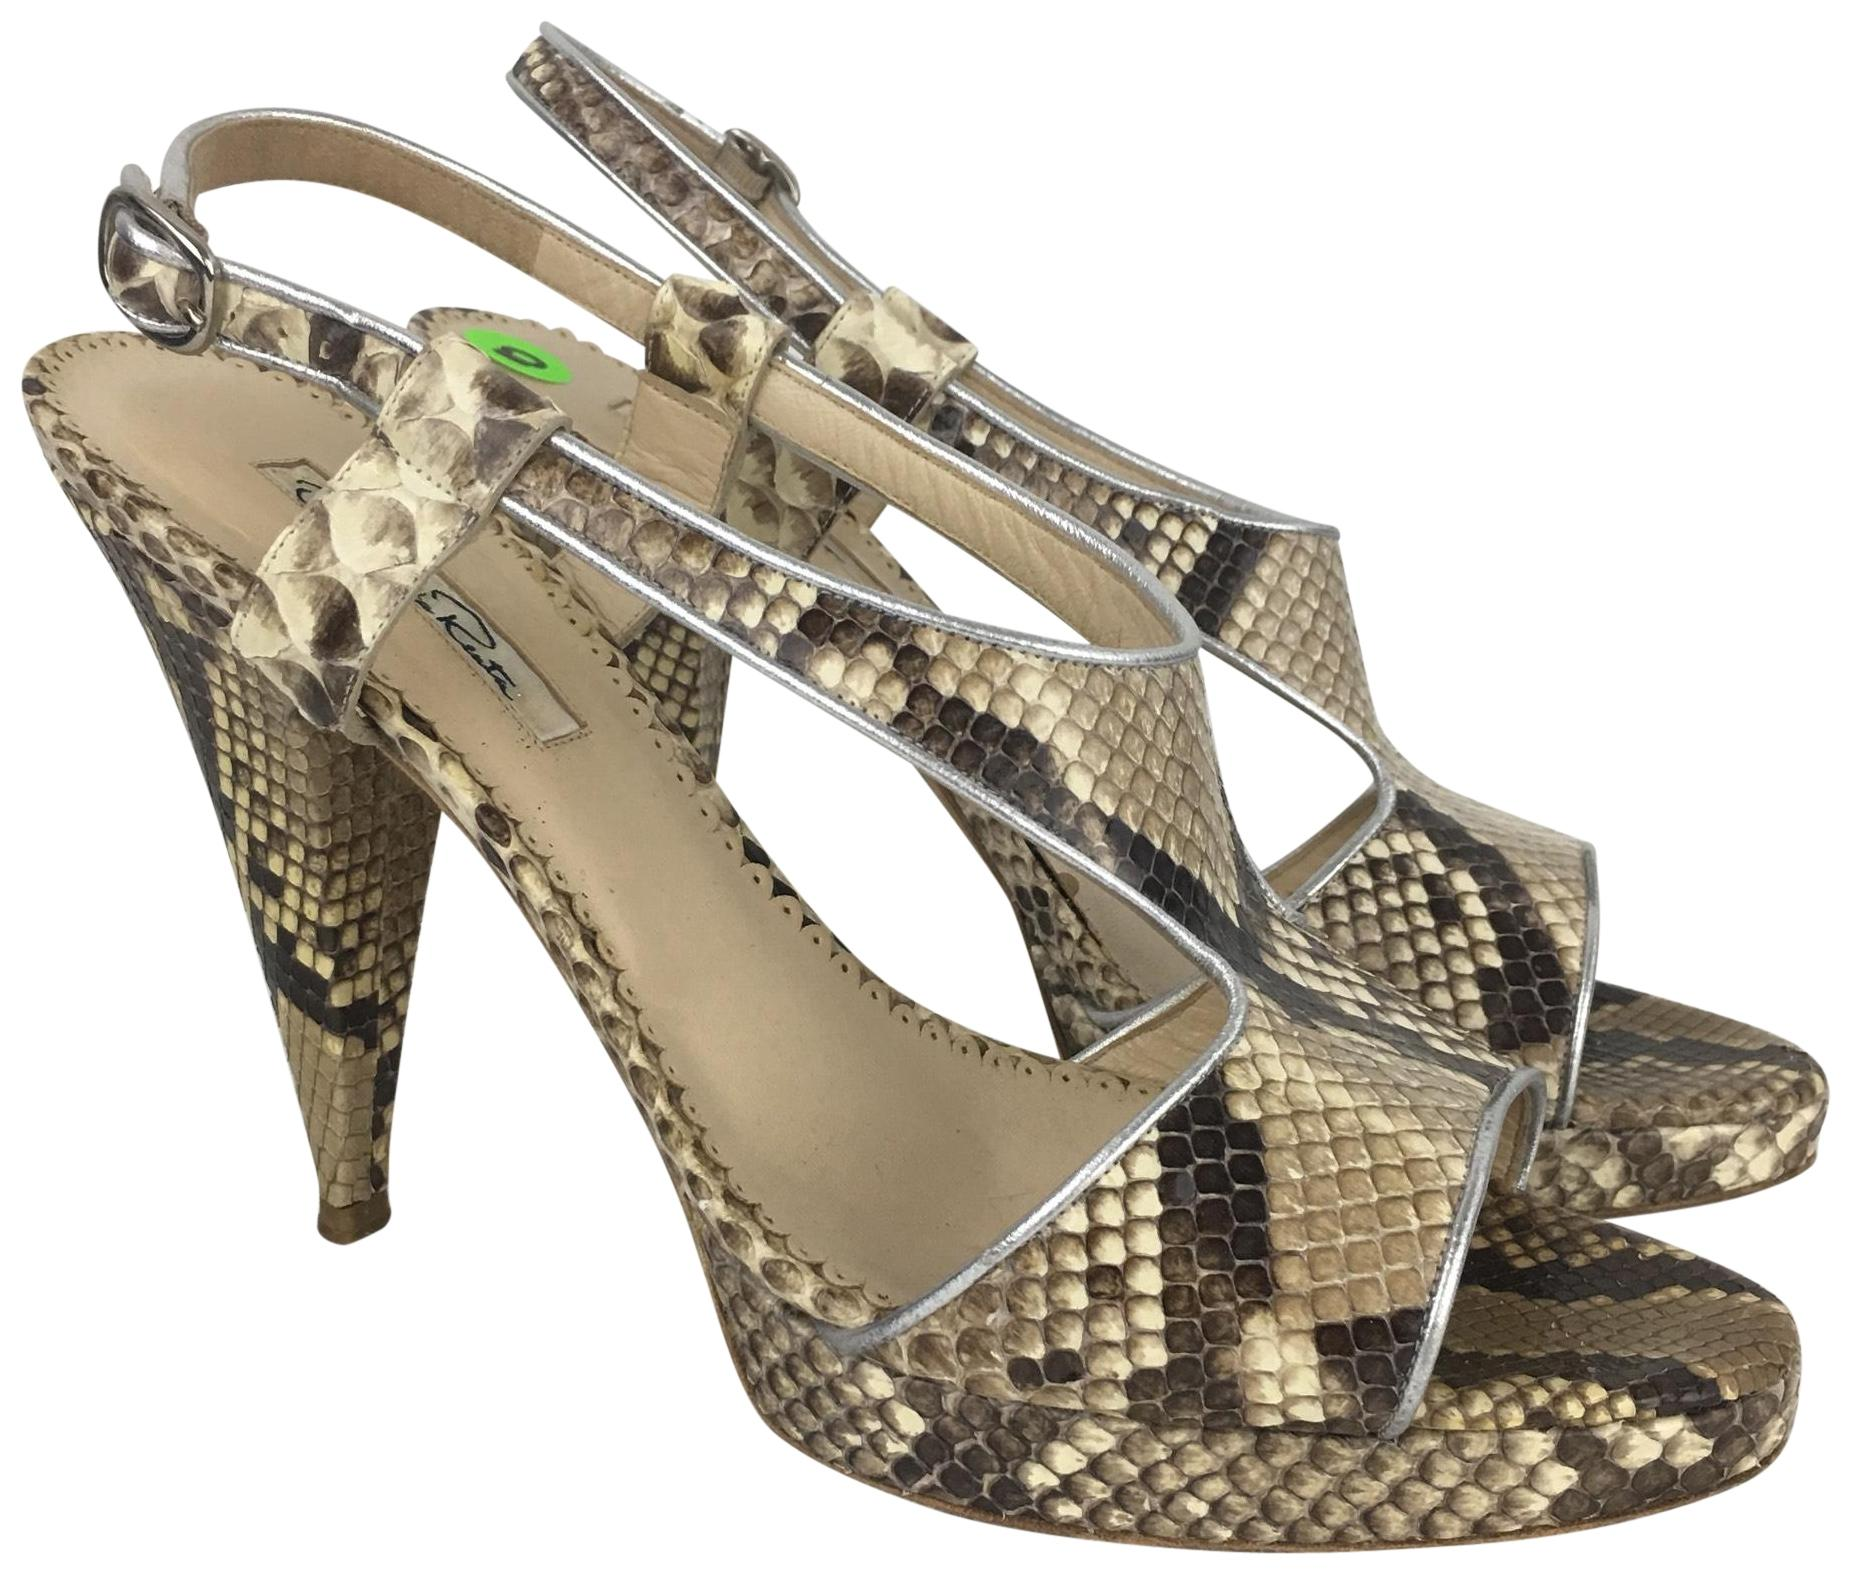 Outlet Limited Edition Oscar de la Renta Python Heels Outlet Free Shipping Authentic Latest Online WrZvyX0